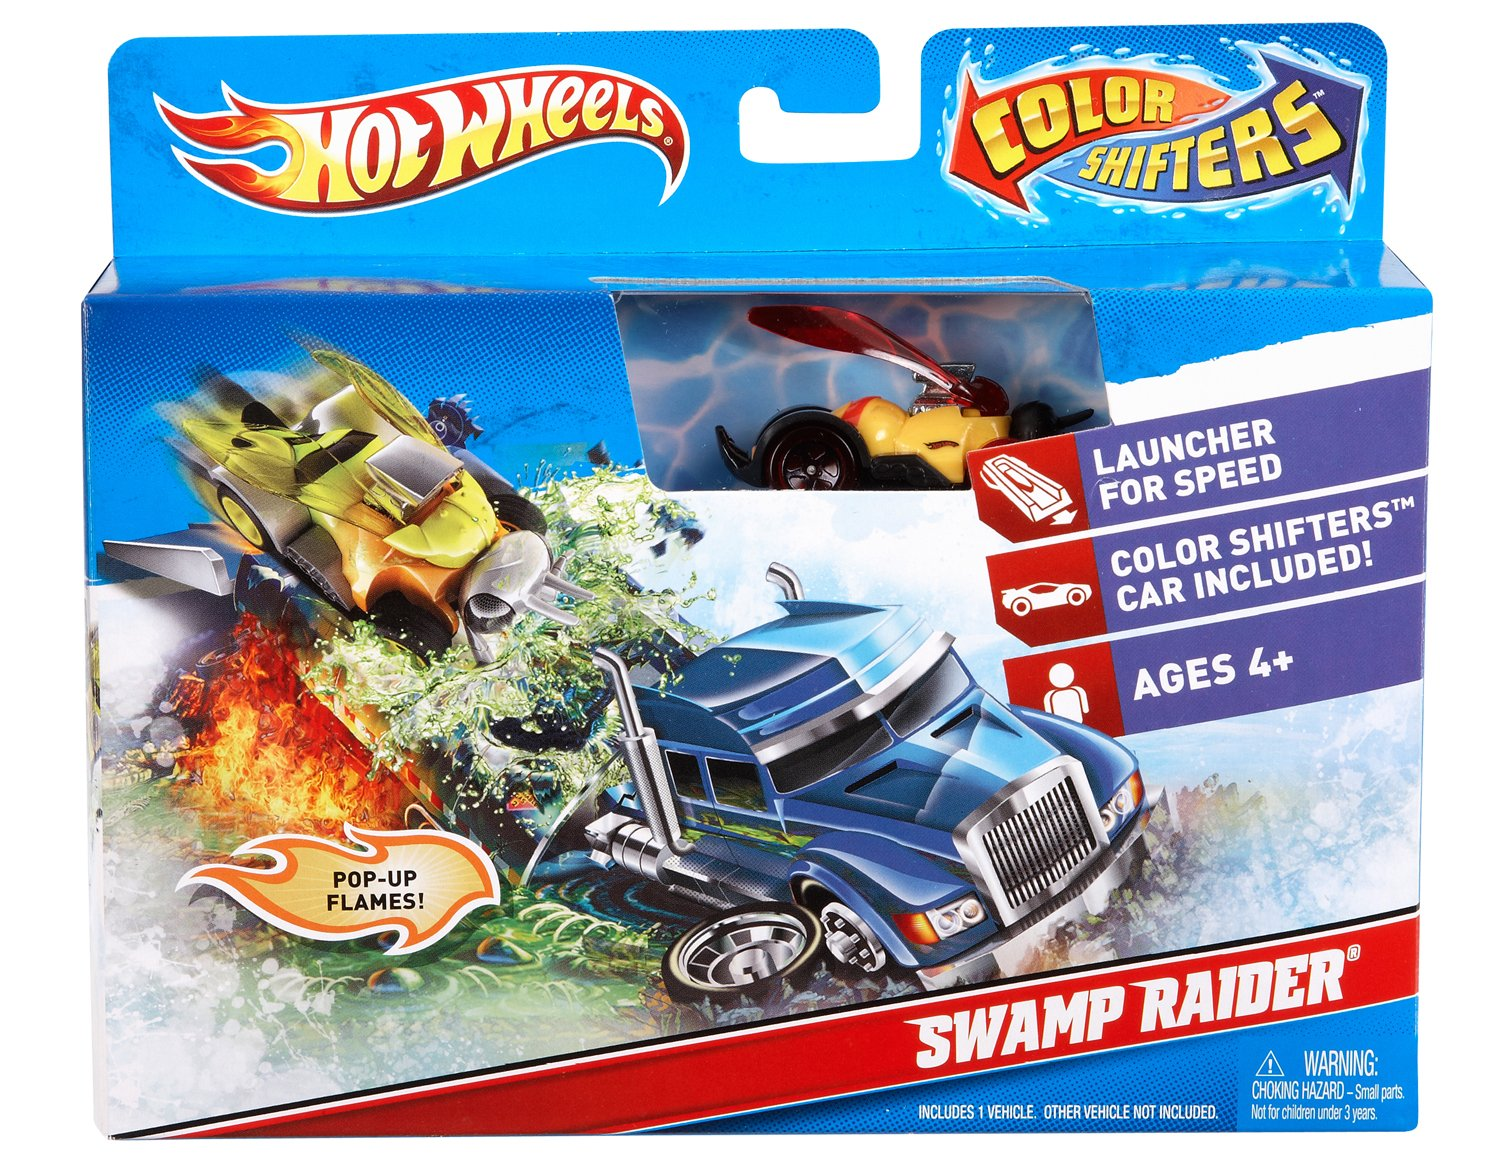 Colour changing car technology - Buy Mattel V4376 Hot Wheels Color Shifters Swamp Raiders Playset Online At Low Prices In India Amazon In